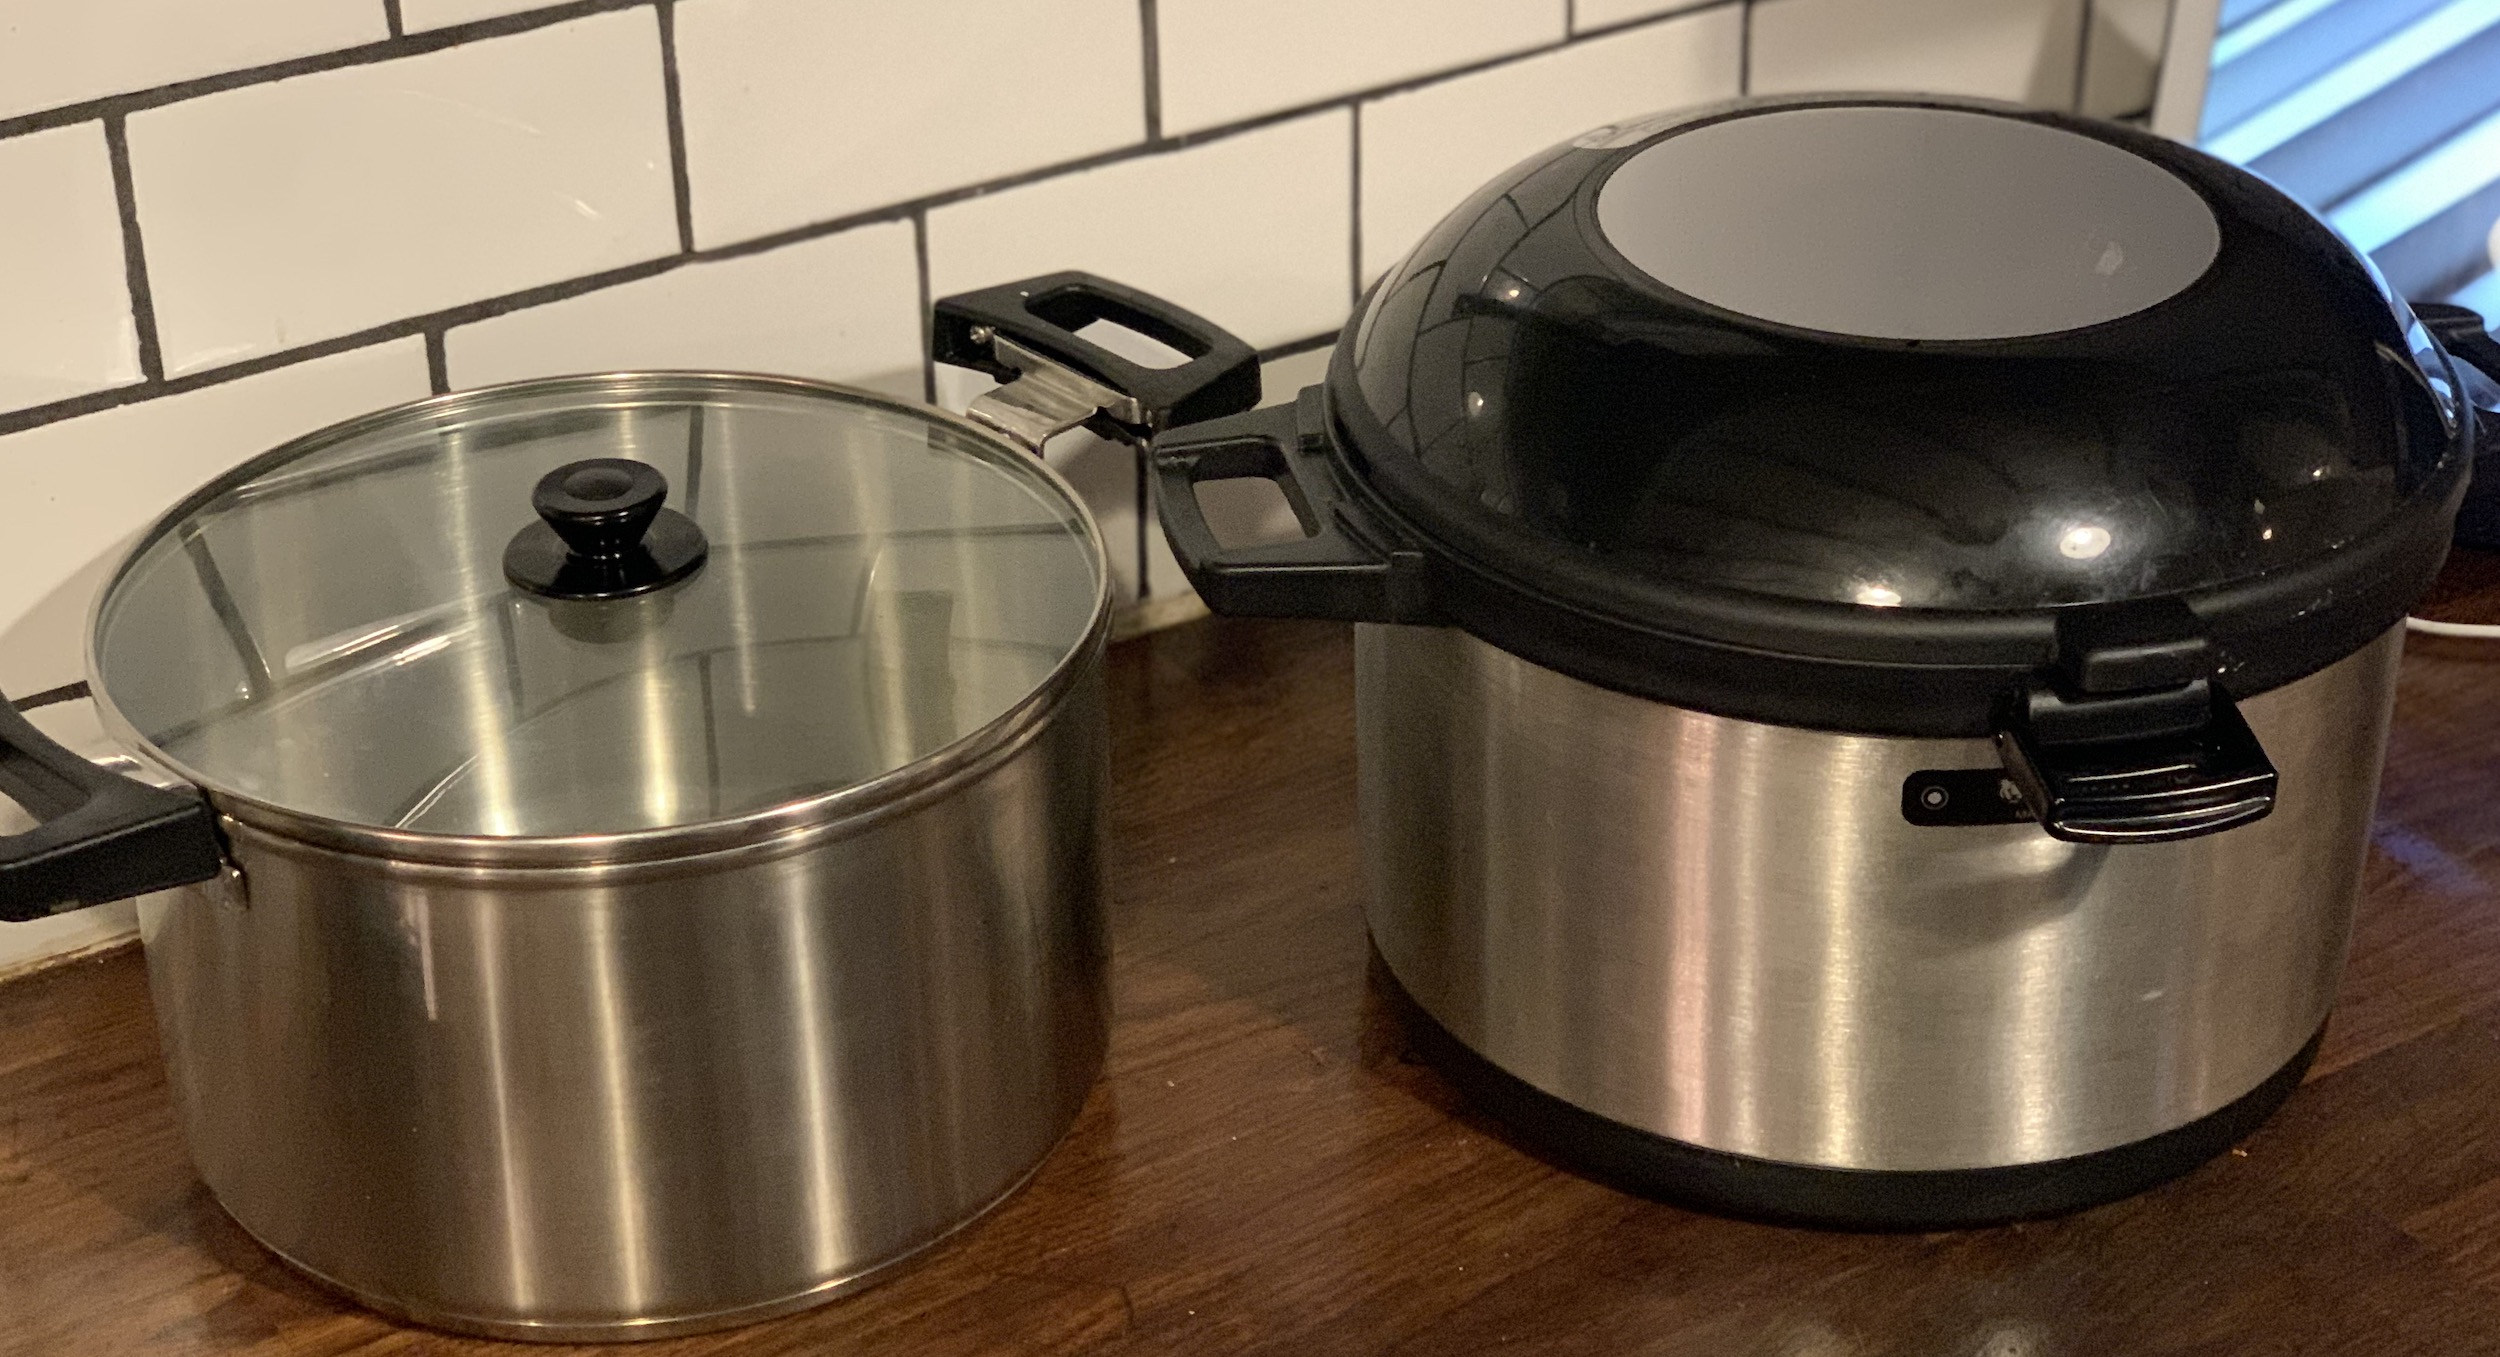 Tiger thermal cooker review